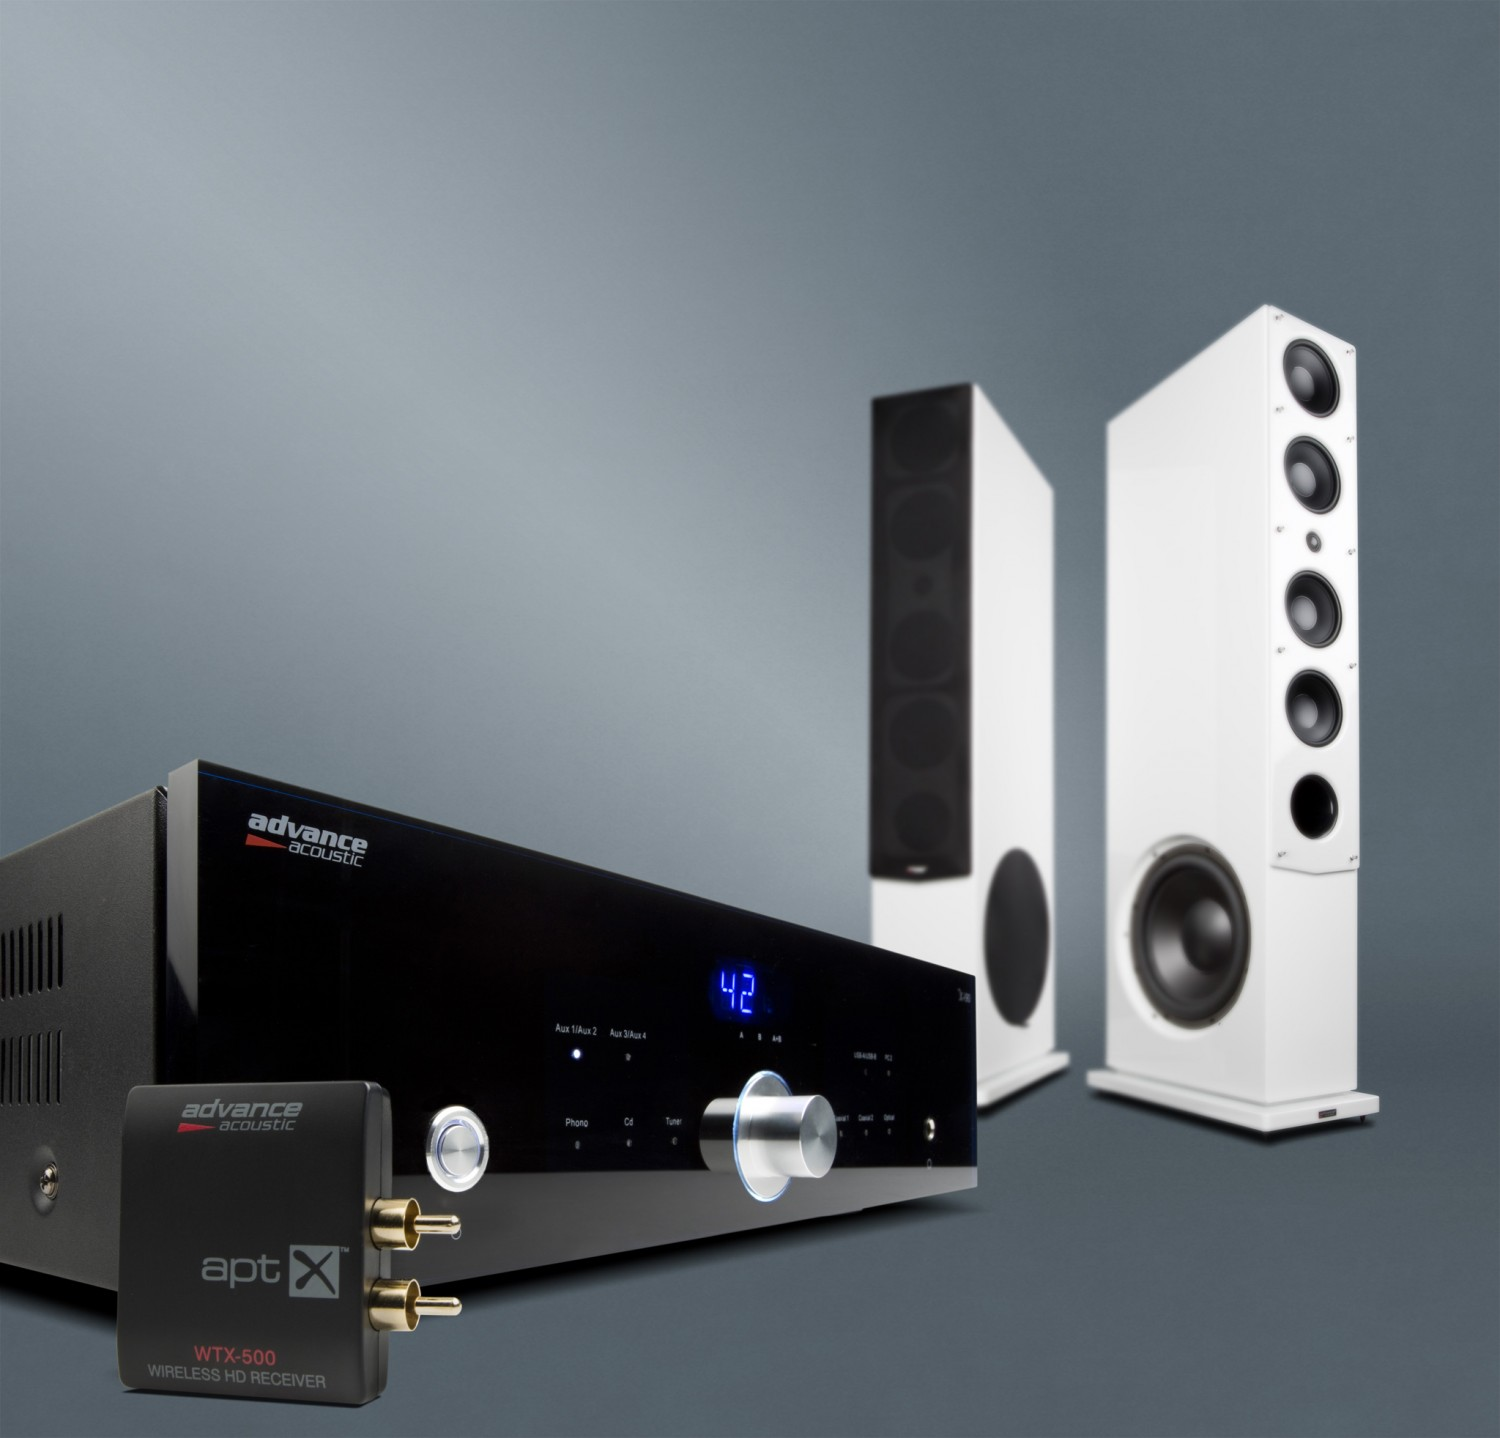 Lautsprecher Stereo Advance Acoustic Kubik K11 S, Advance Acoustic X-I90 im Test , Bild 1